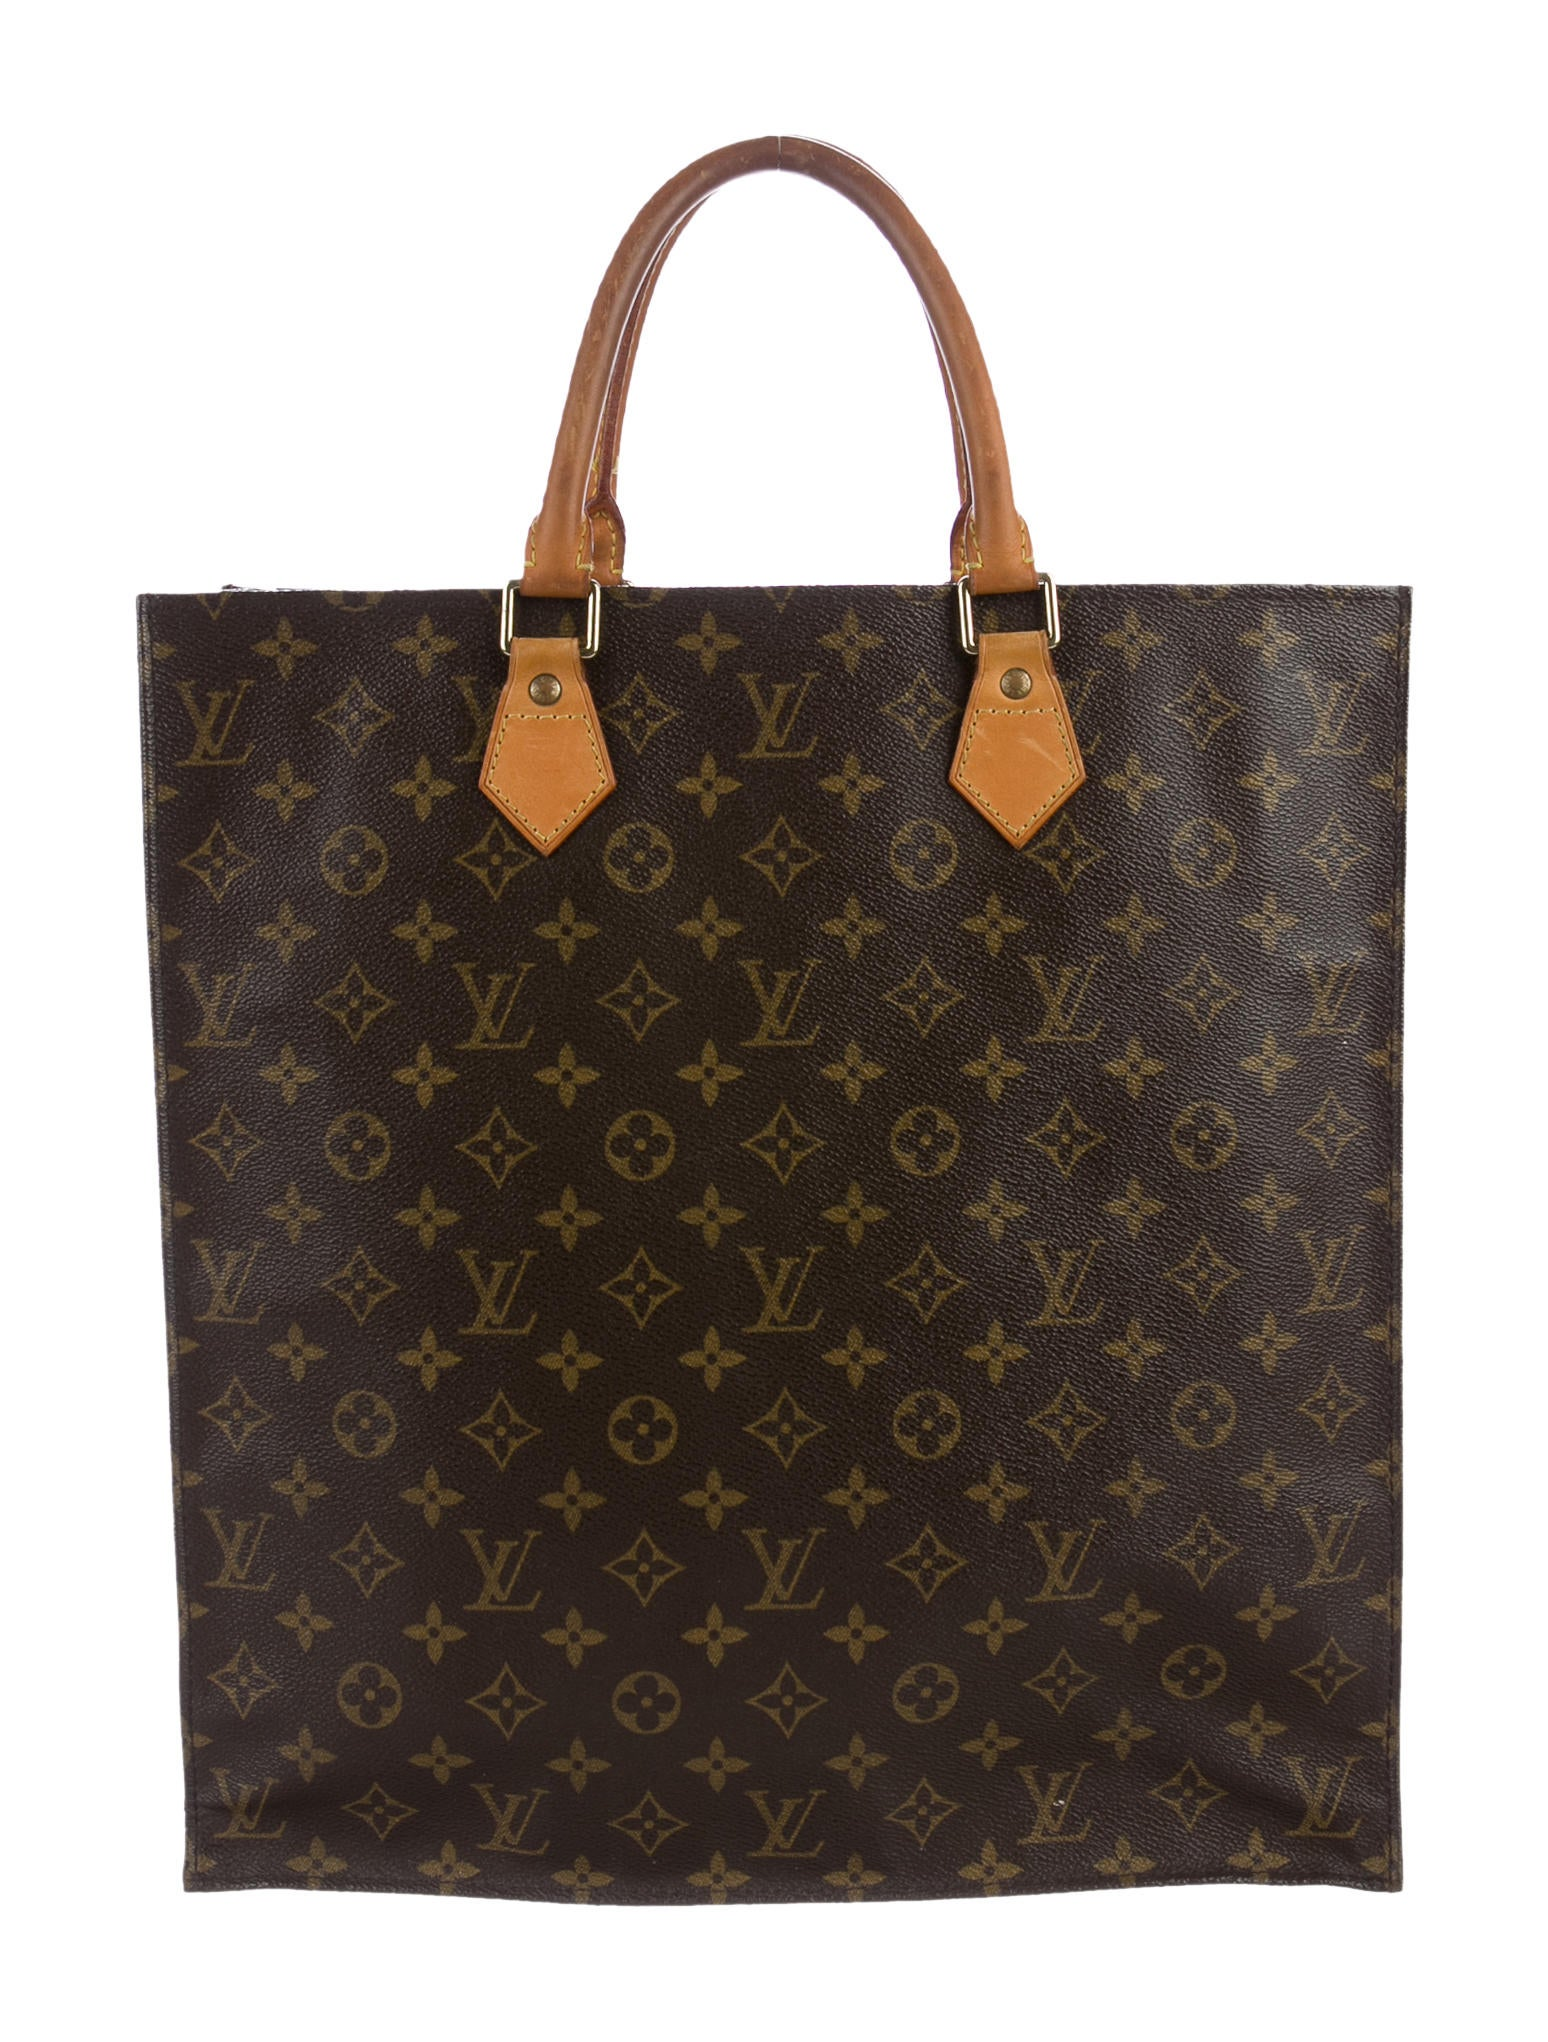 Louis vuitton monogram sac plat bags lou123892 the for Louis vuitton monogram miroir sac plat